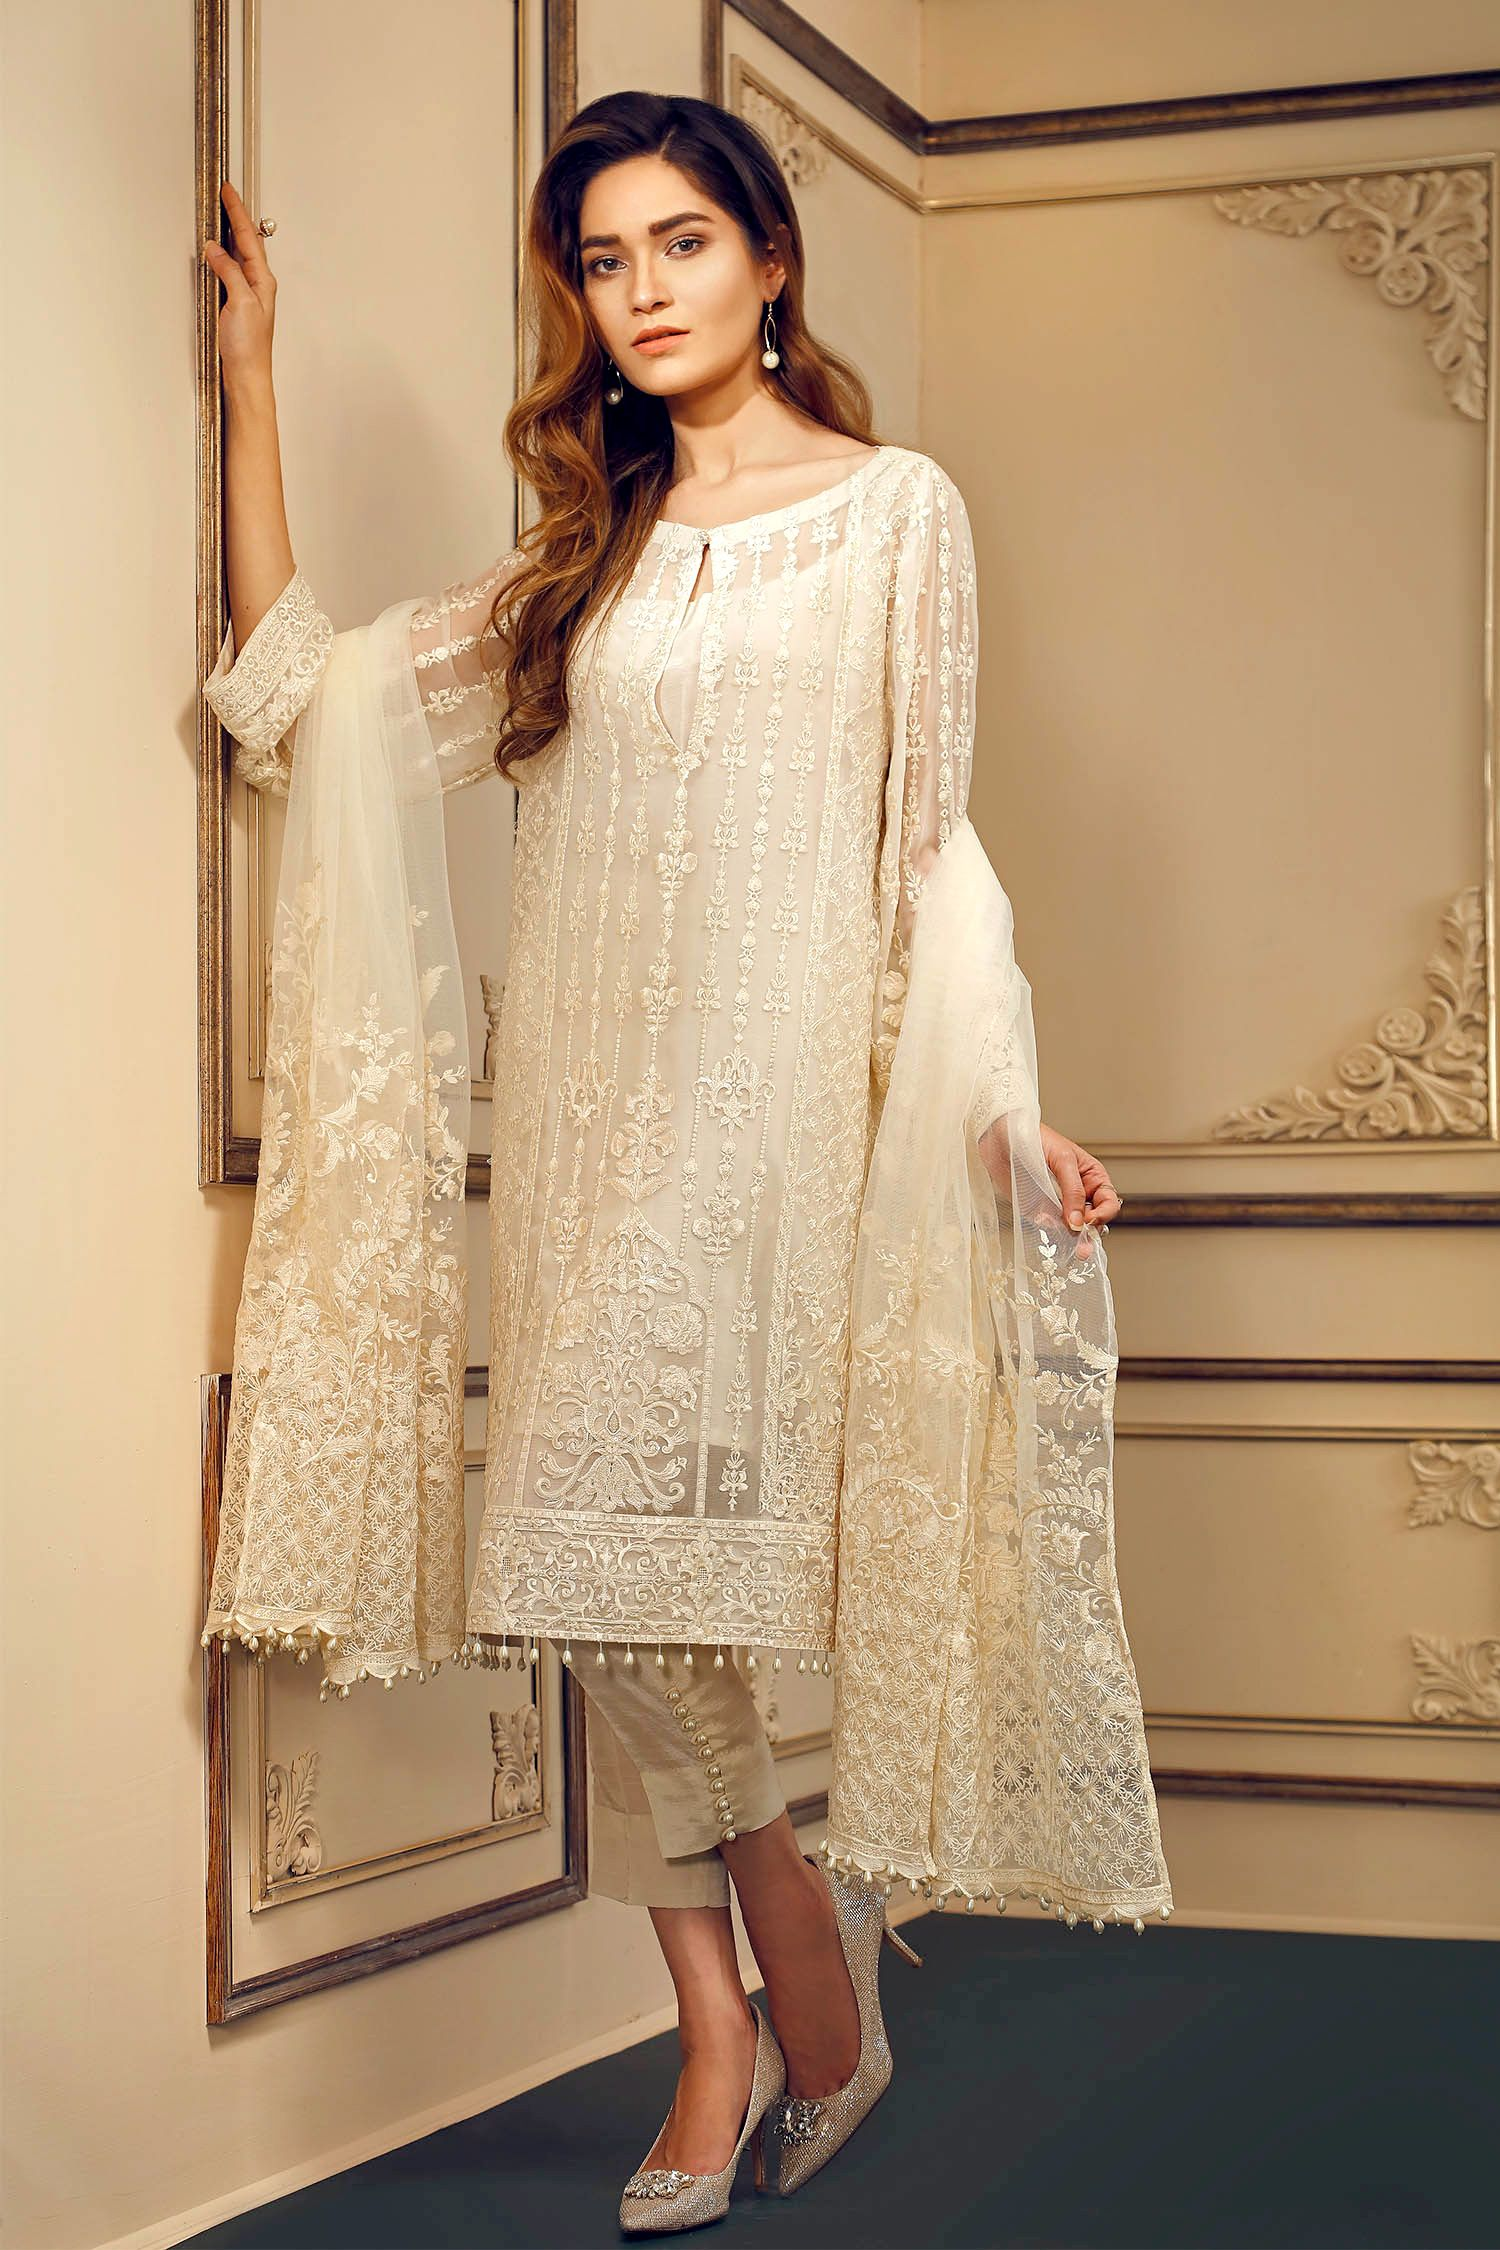 dc015d8f12 Shop Stitched 3pc Orignal Pakistani Designer Latest Embroidered Chiffon  Salwar Suit Collection at PinkPhulkari California. Ready to ship from  California.